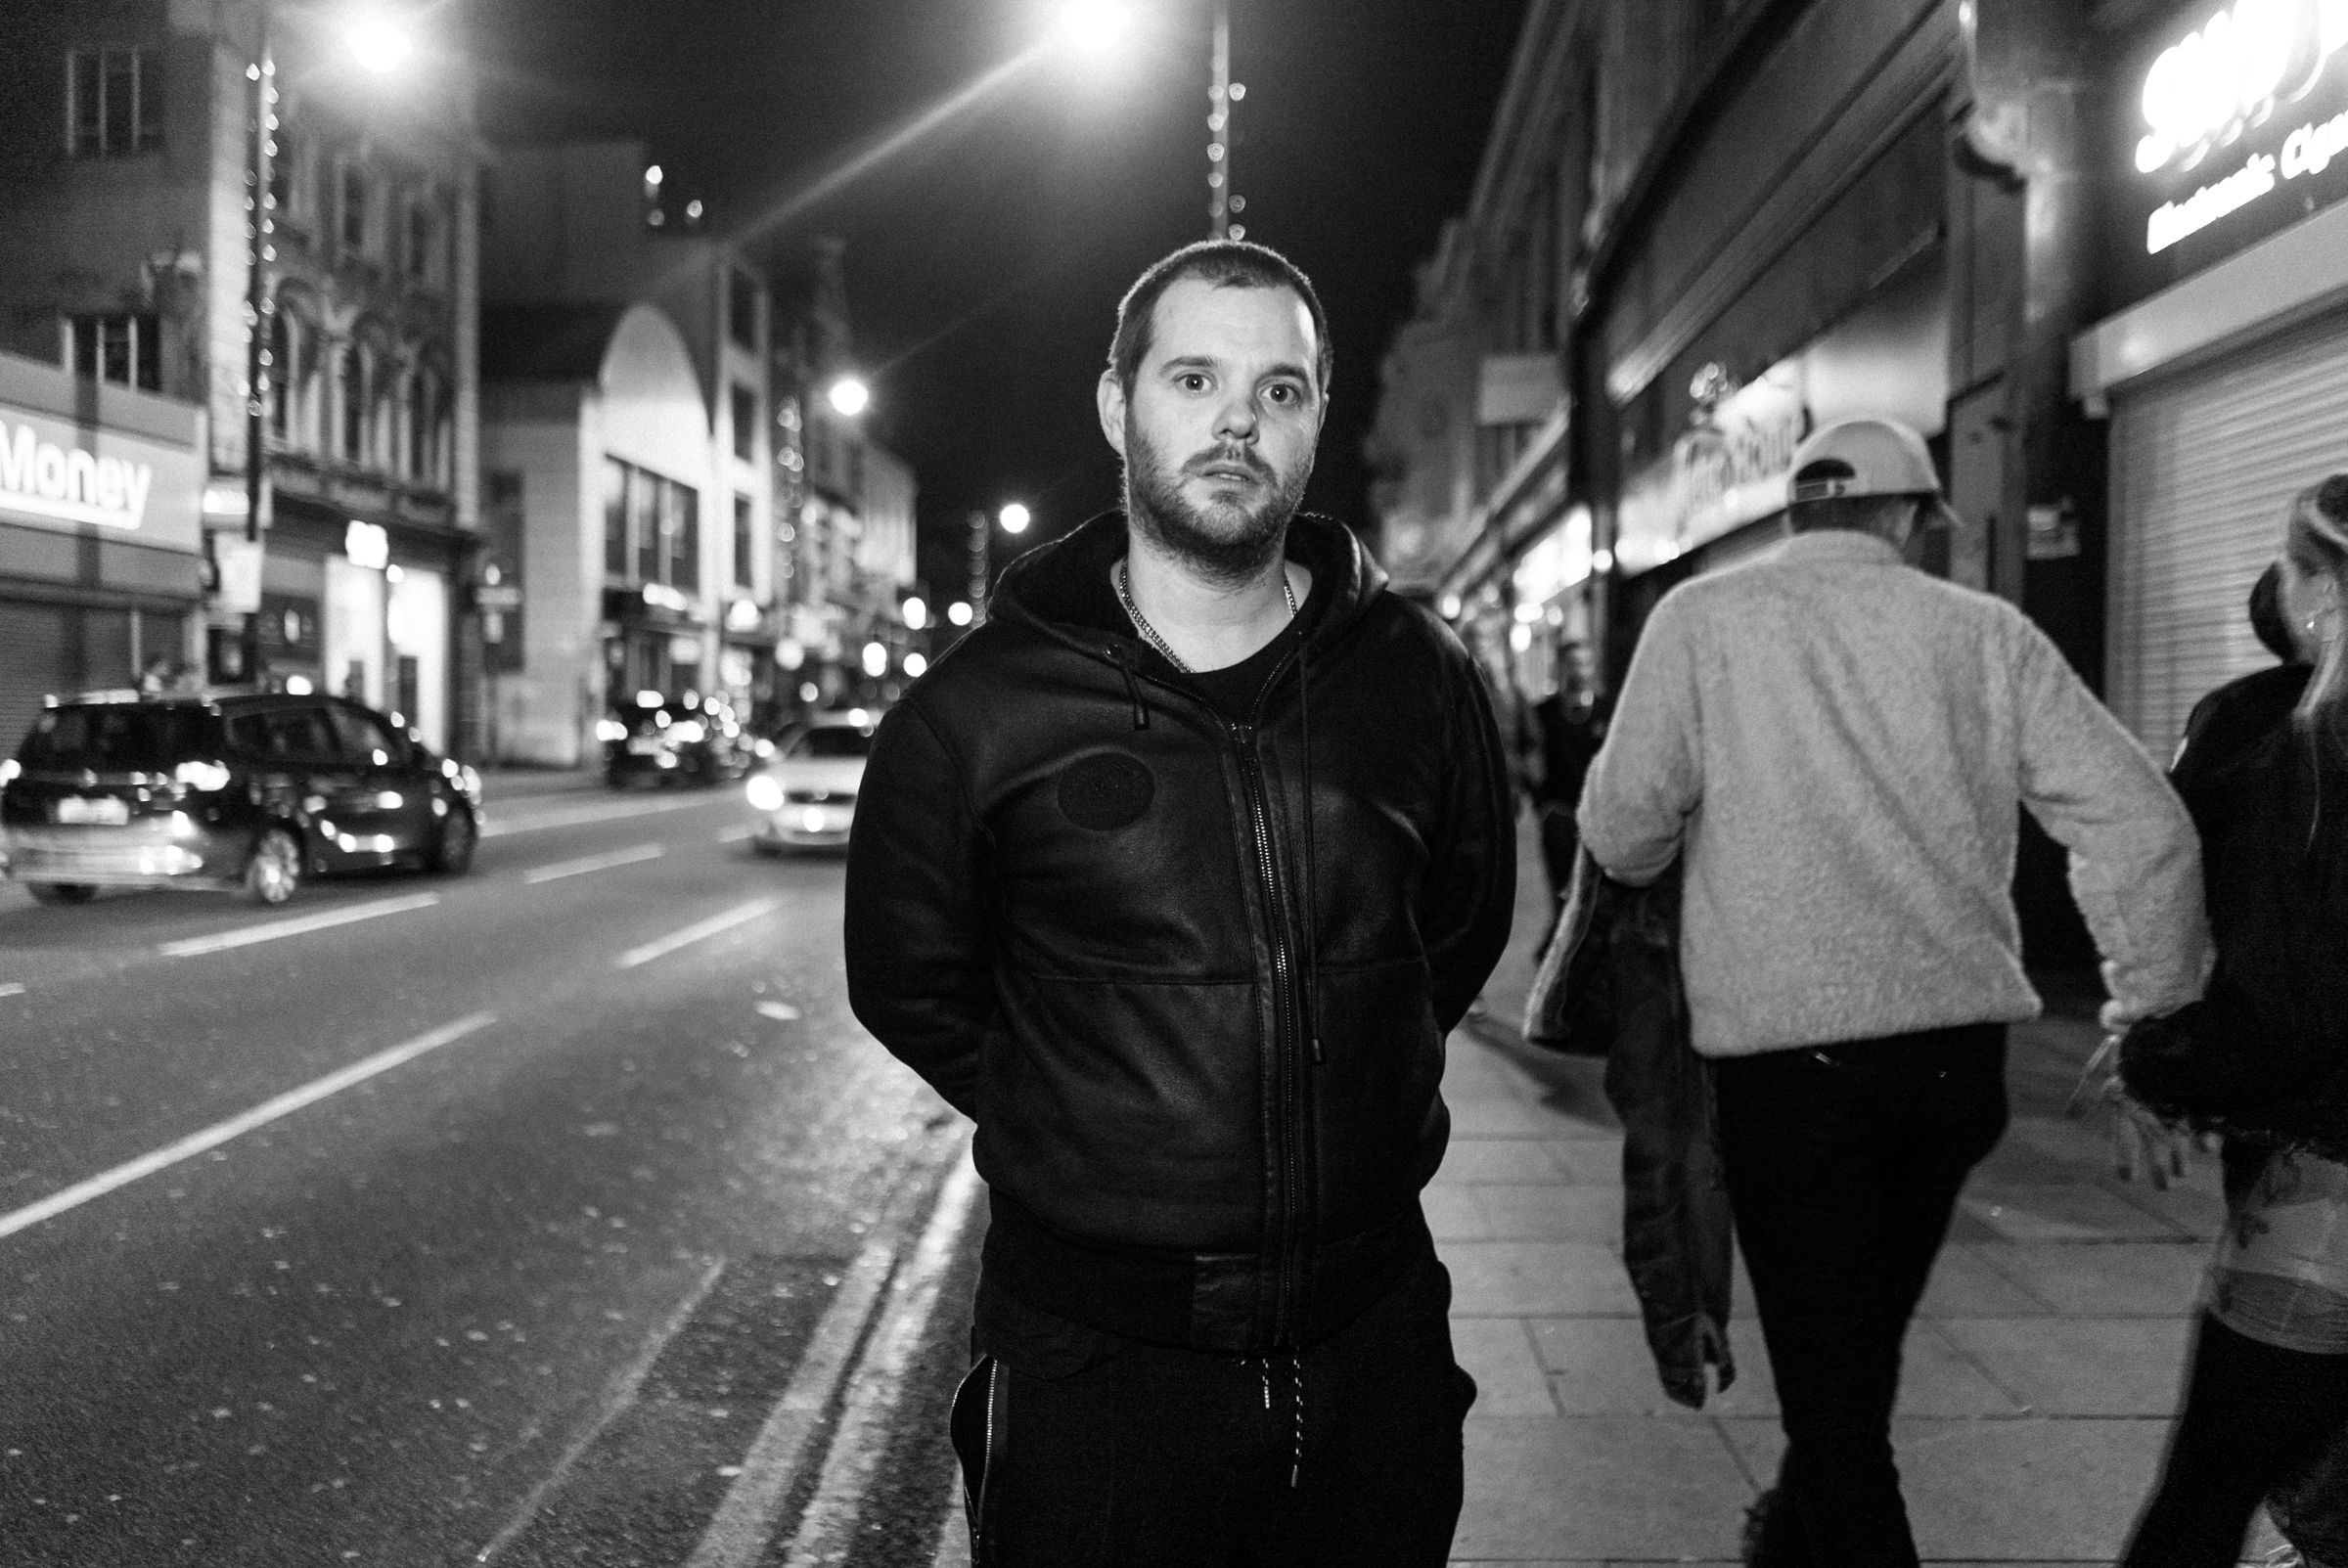 Mike Skinner: The Streets x Foot Patrol